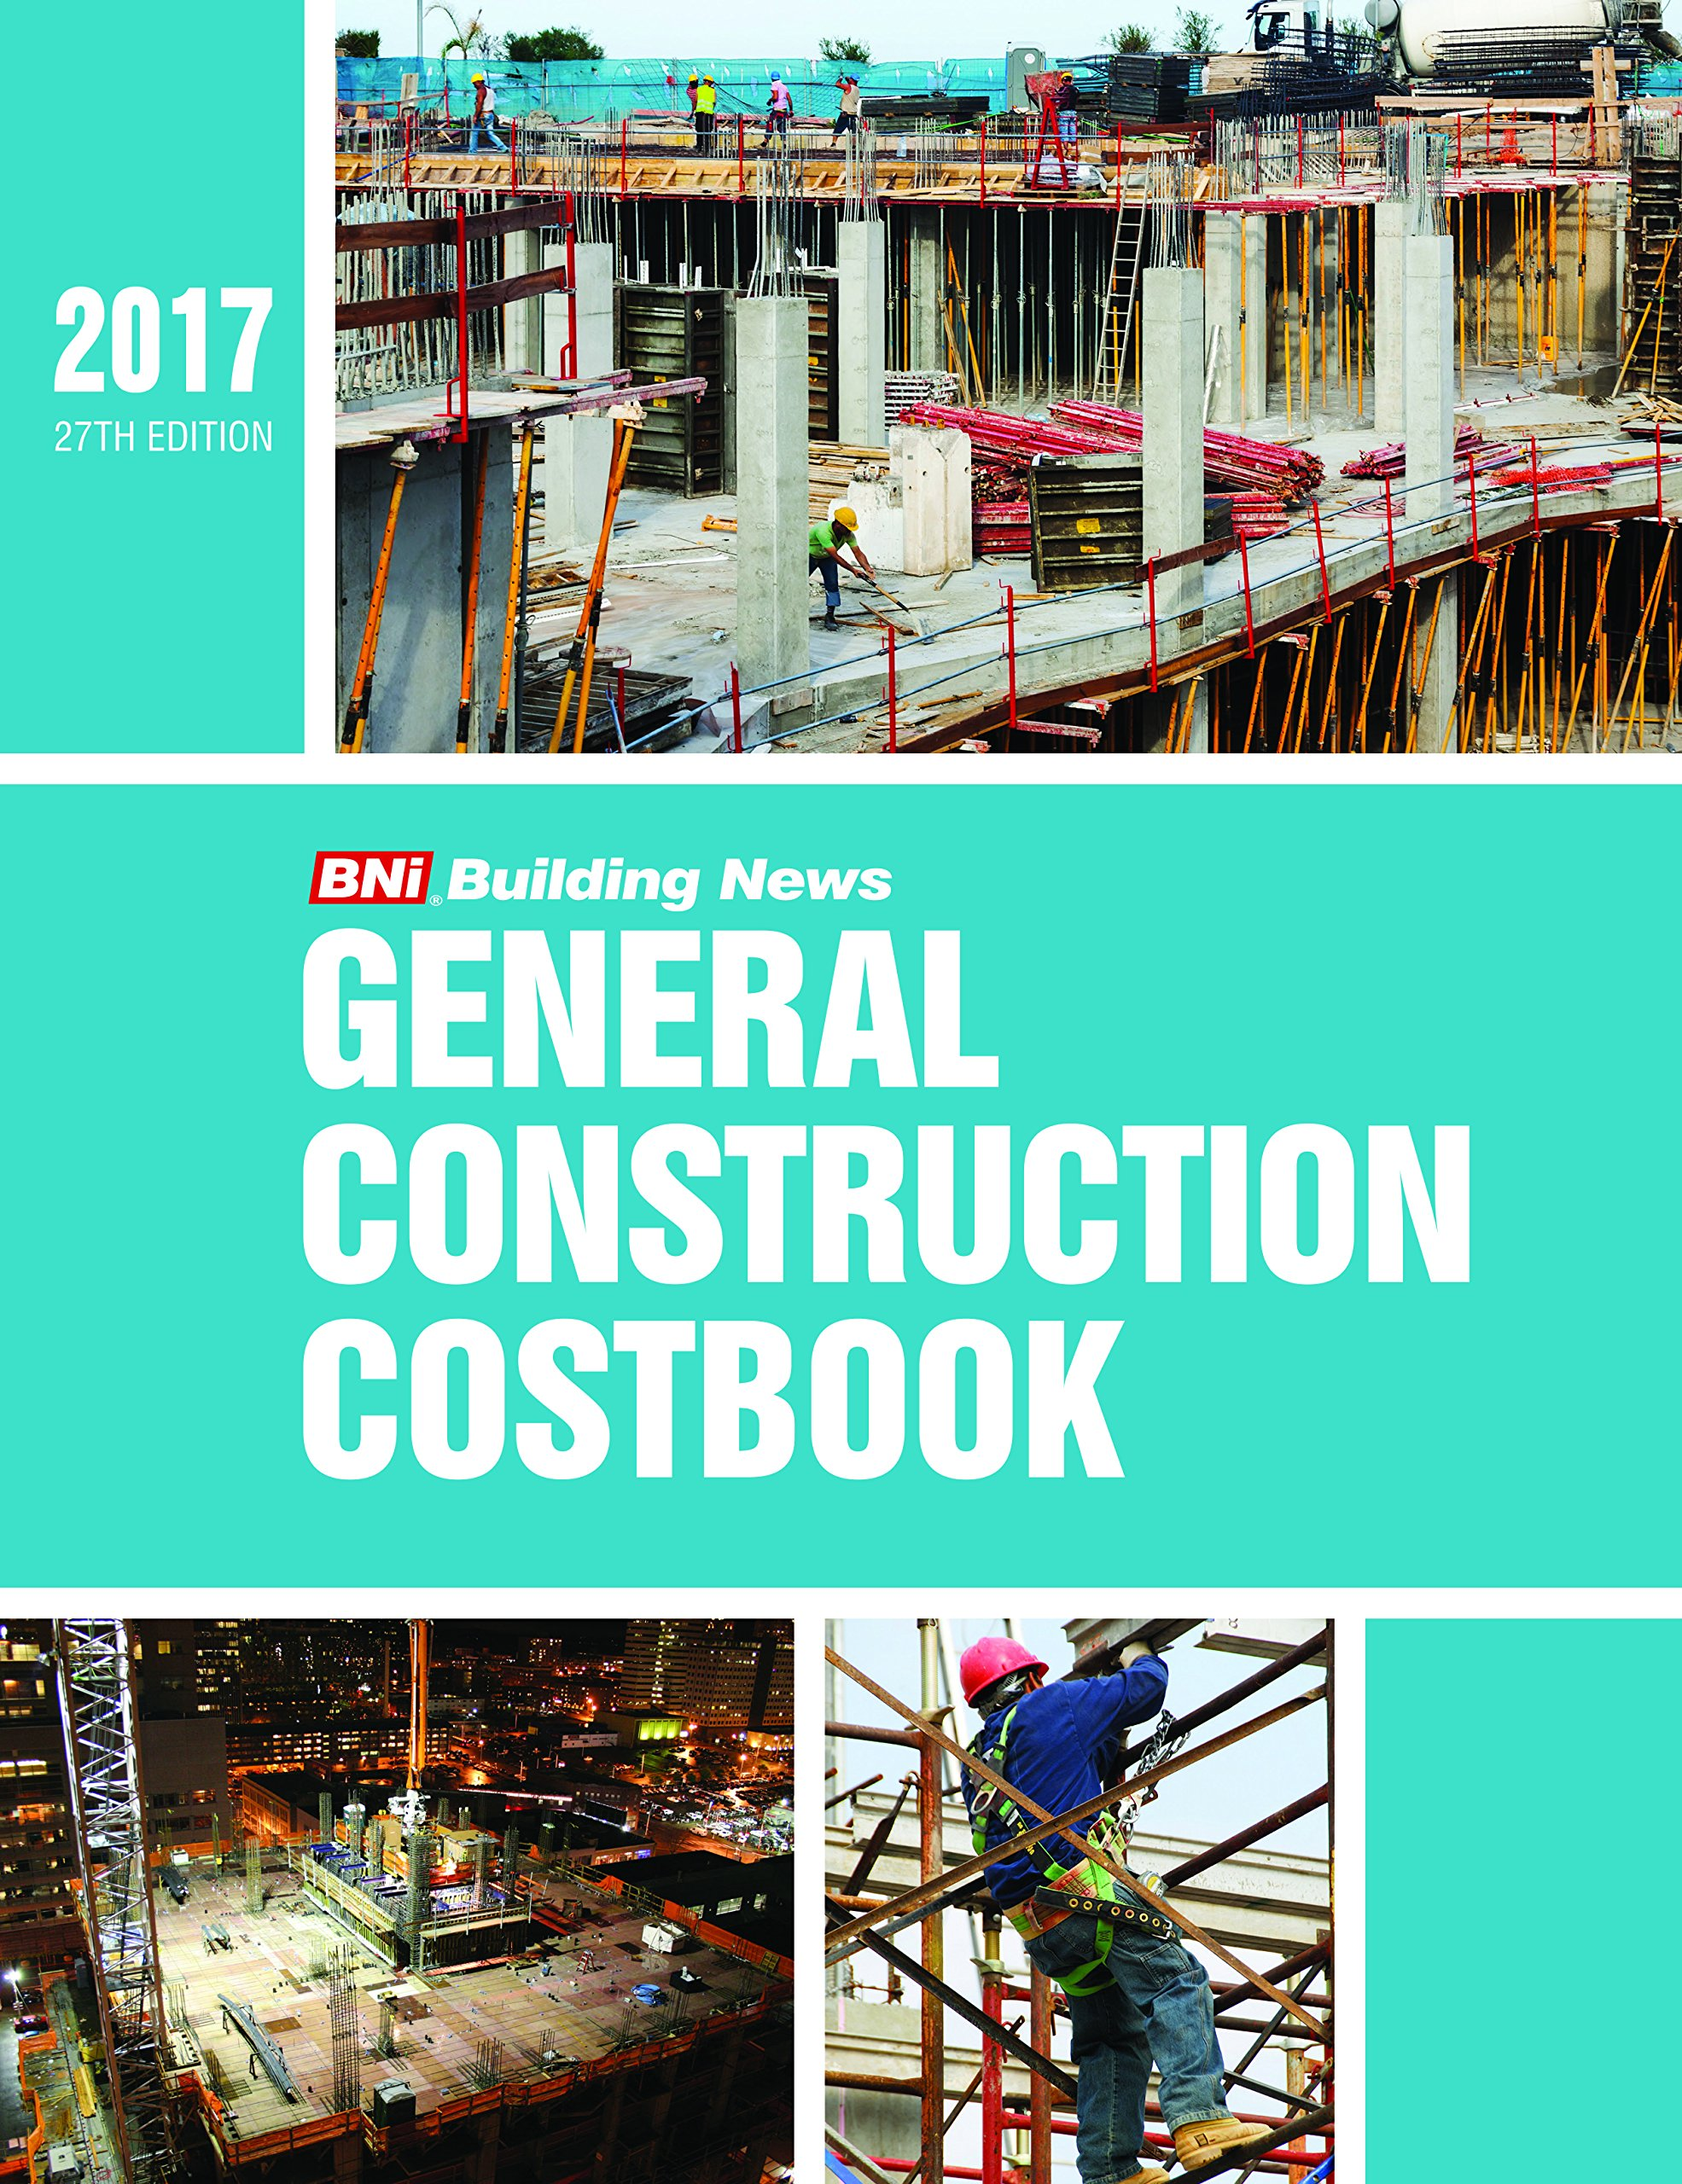 2017 Bni General Construction Costbook